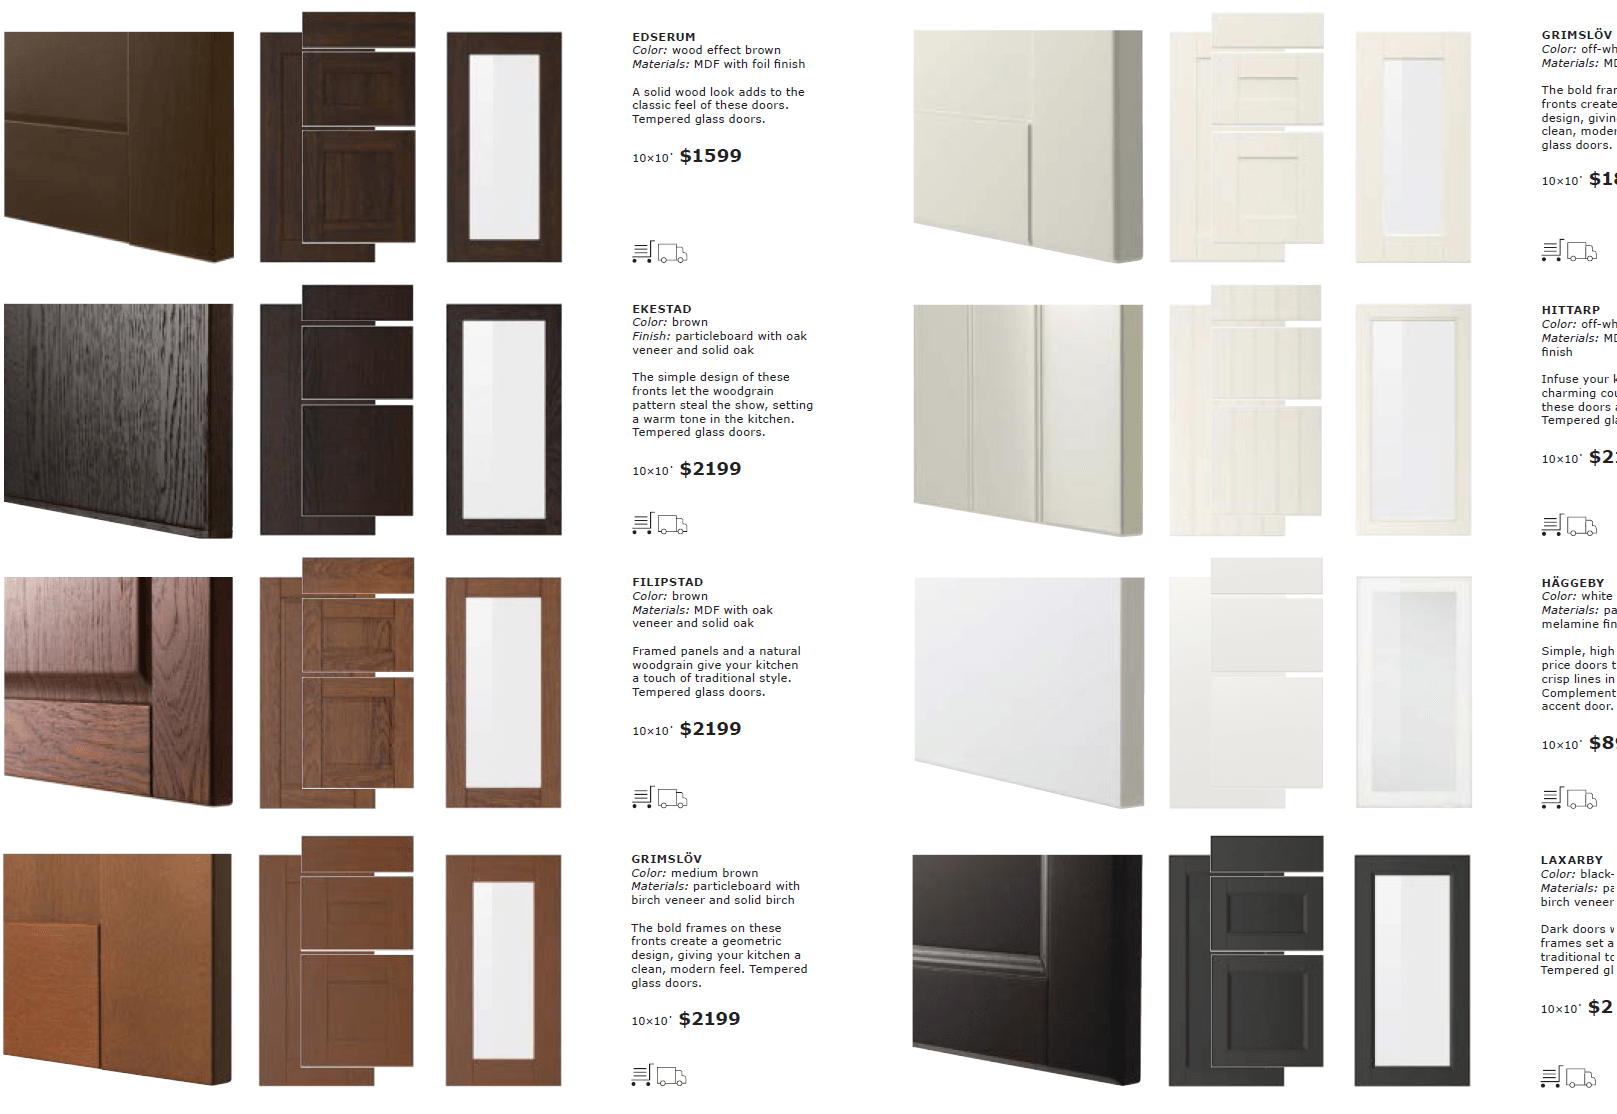 Le Meilleur A Close Look At Ikea Sektion Cabinet Doors Ce Mois Ci